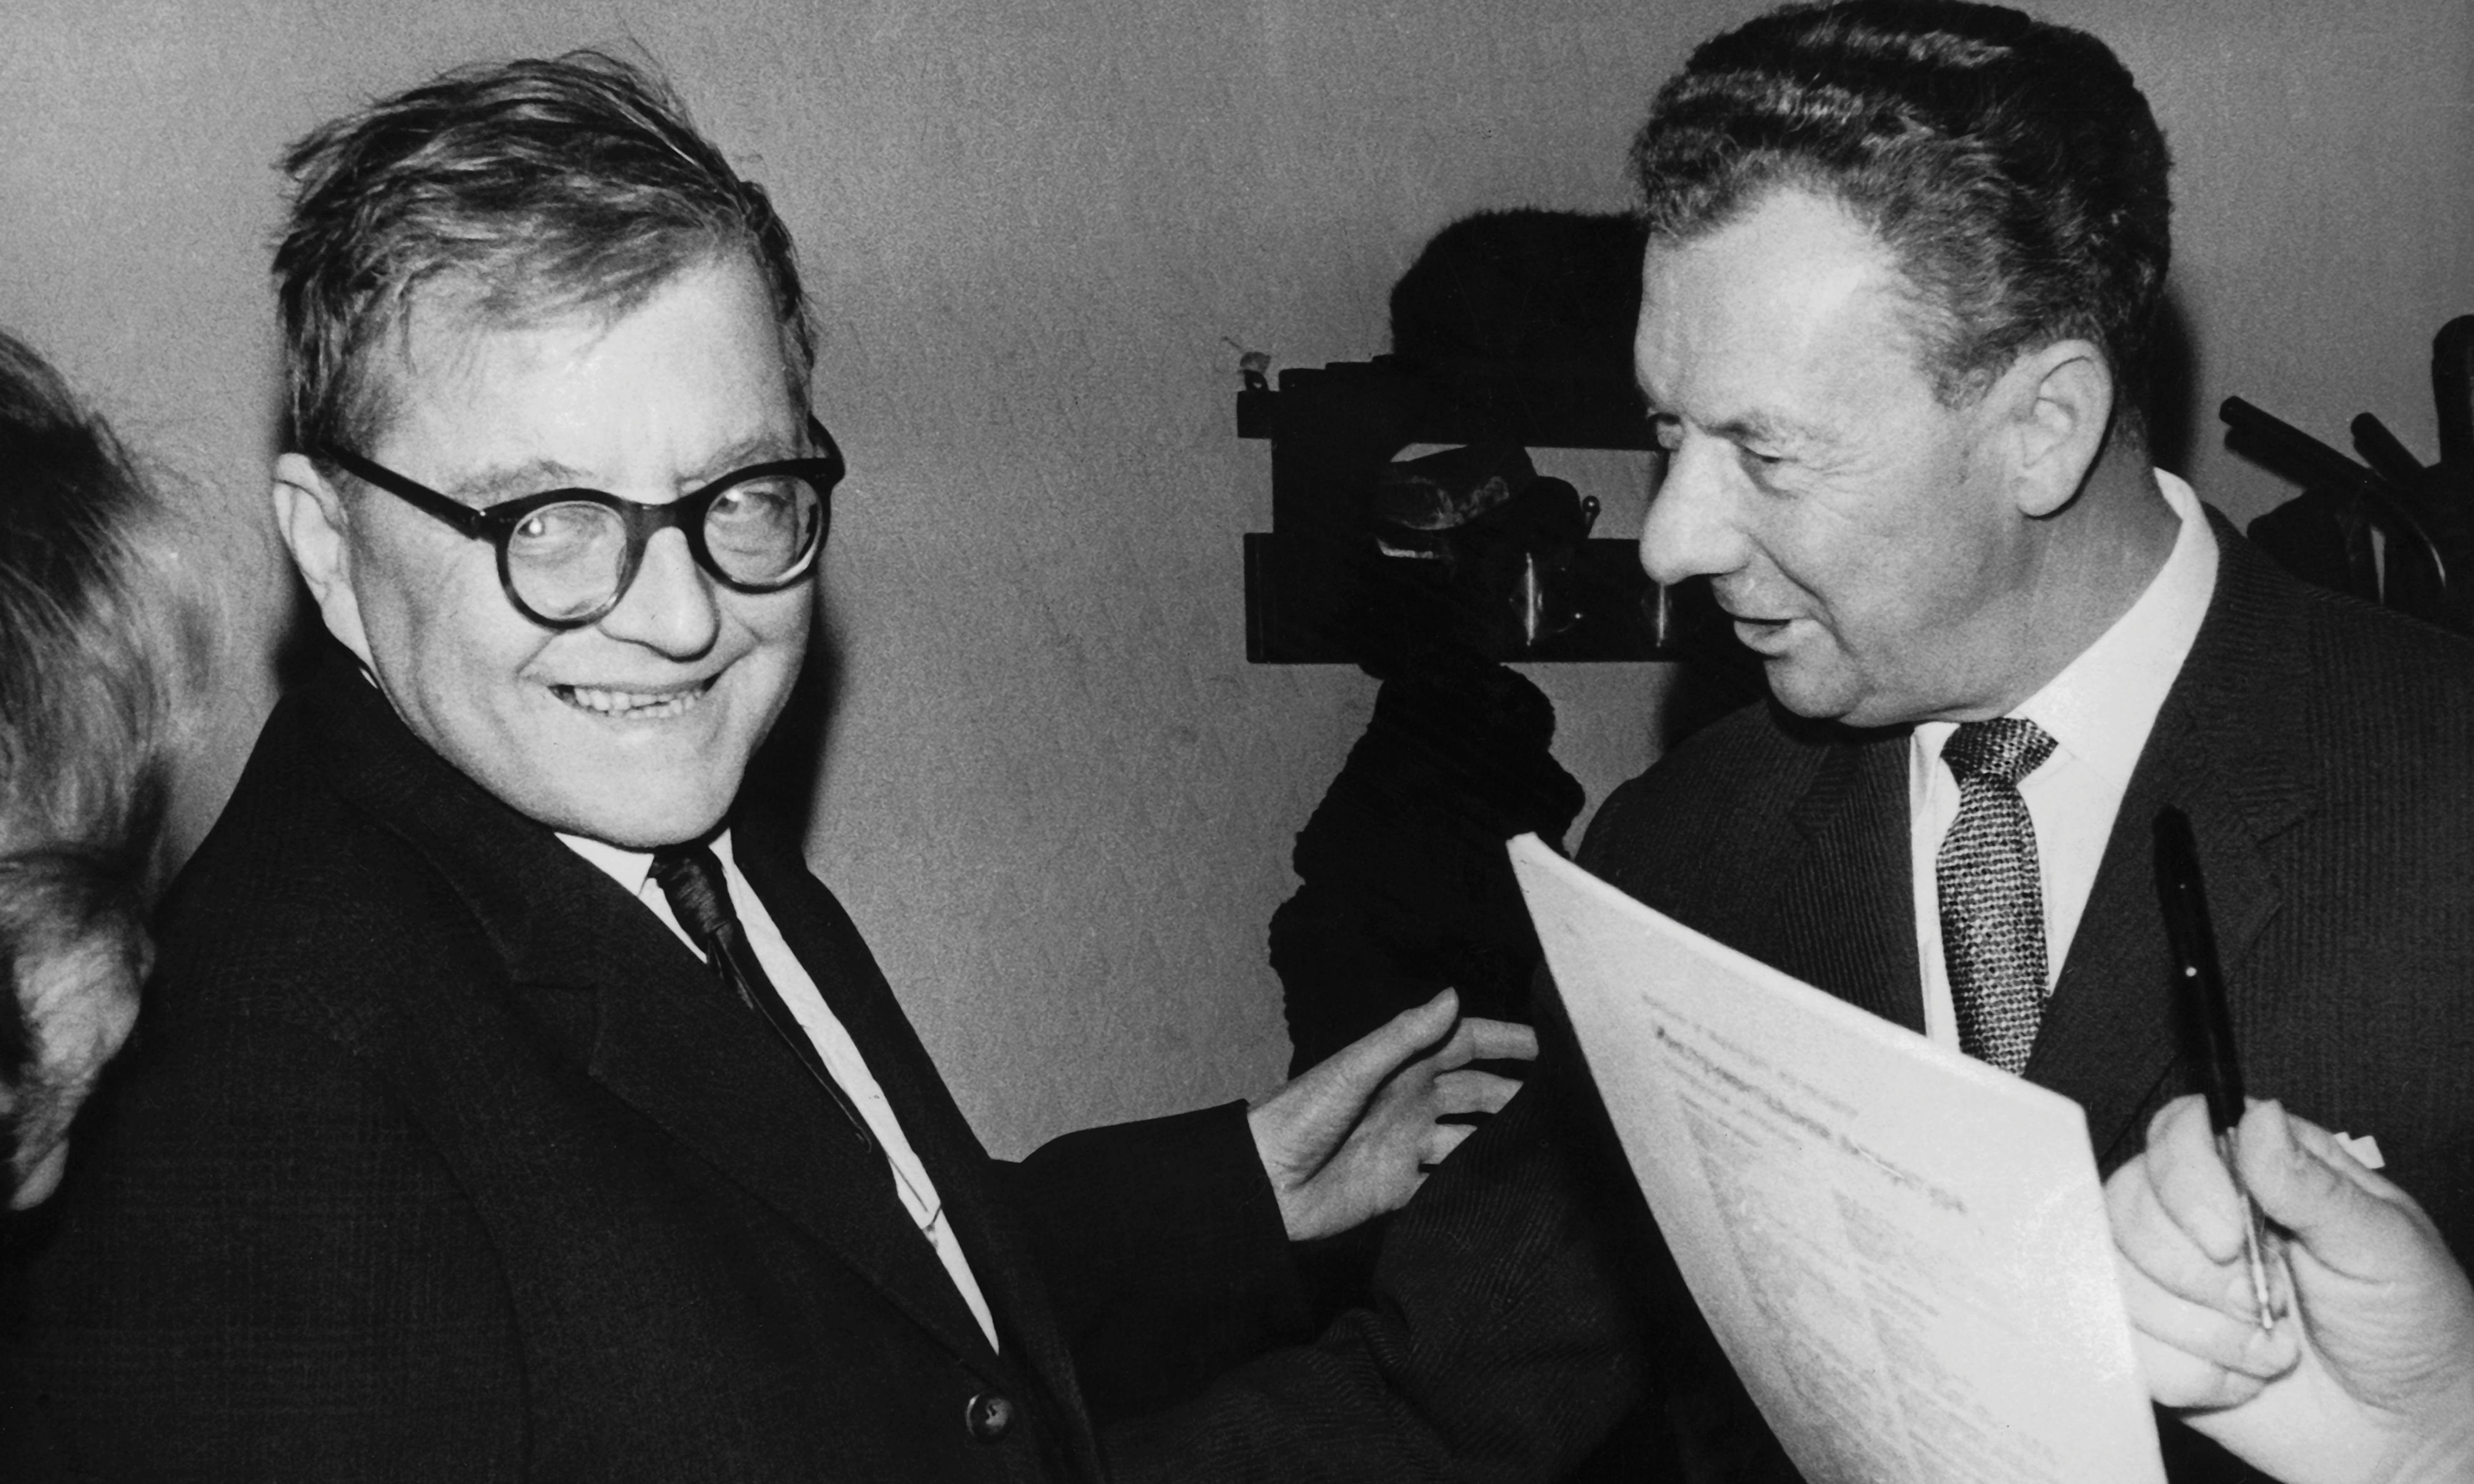 Rebels with a cause: the friendship of Britten and Shostakovich